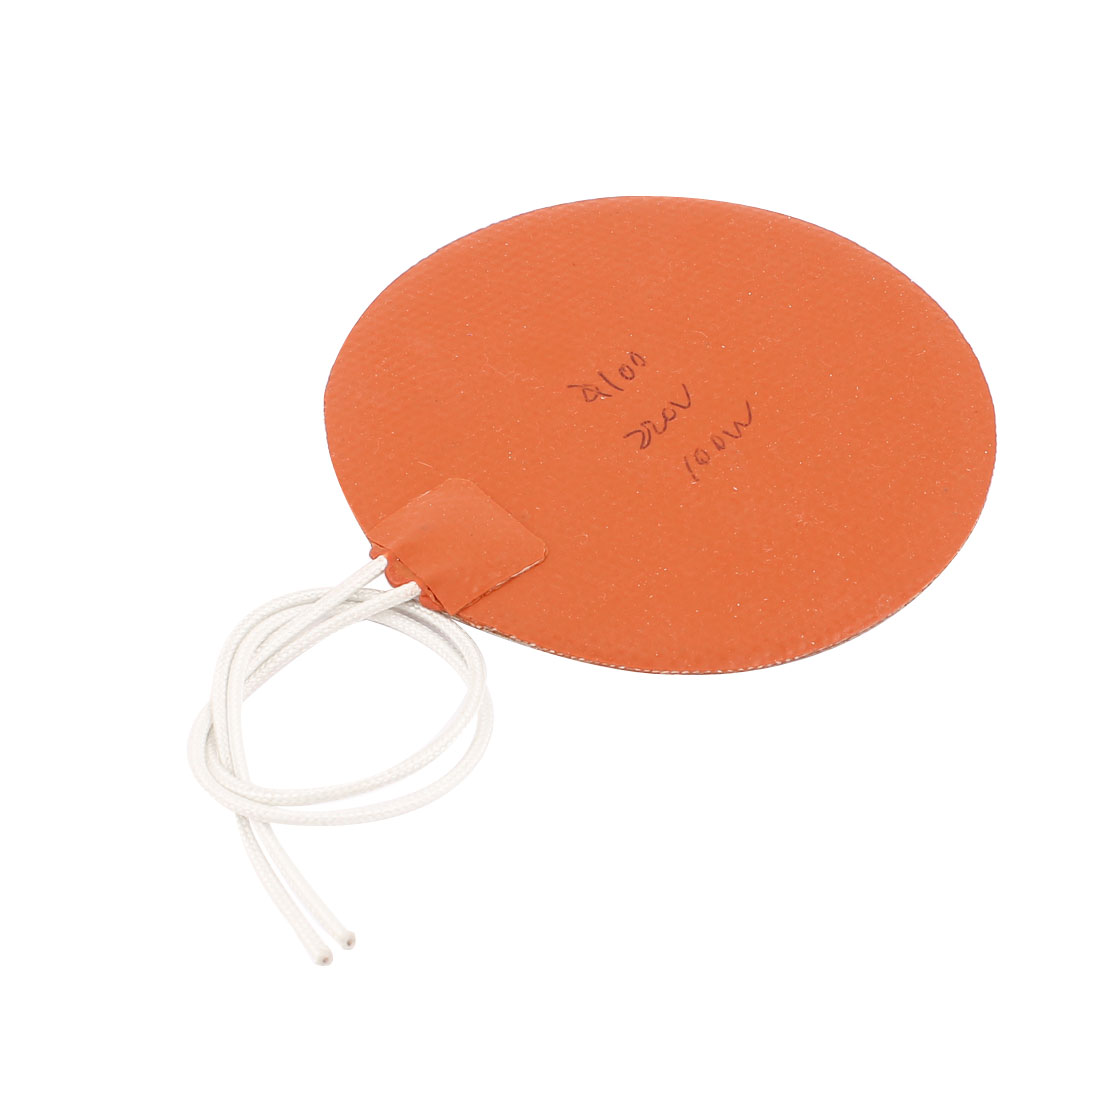 220V 100W 100mm Outer Dia Round Silicone Heating Plate Flexible Rubber Heater